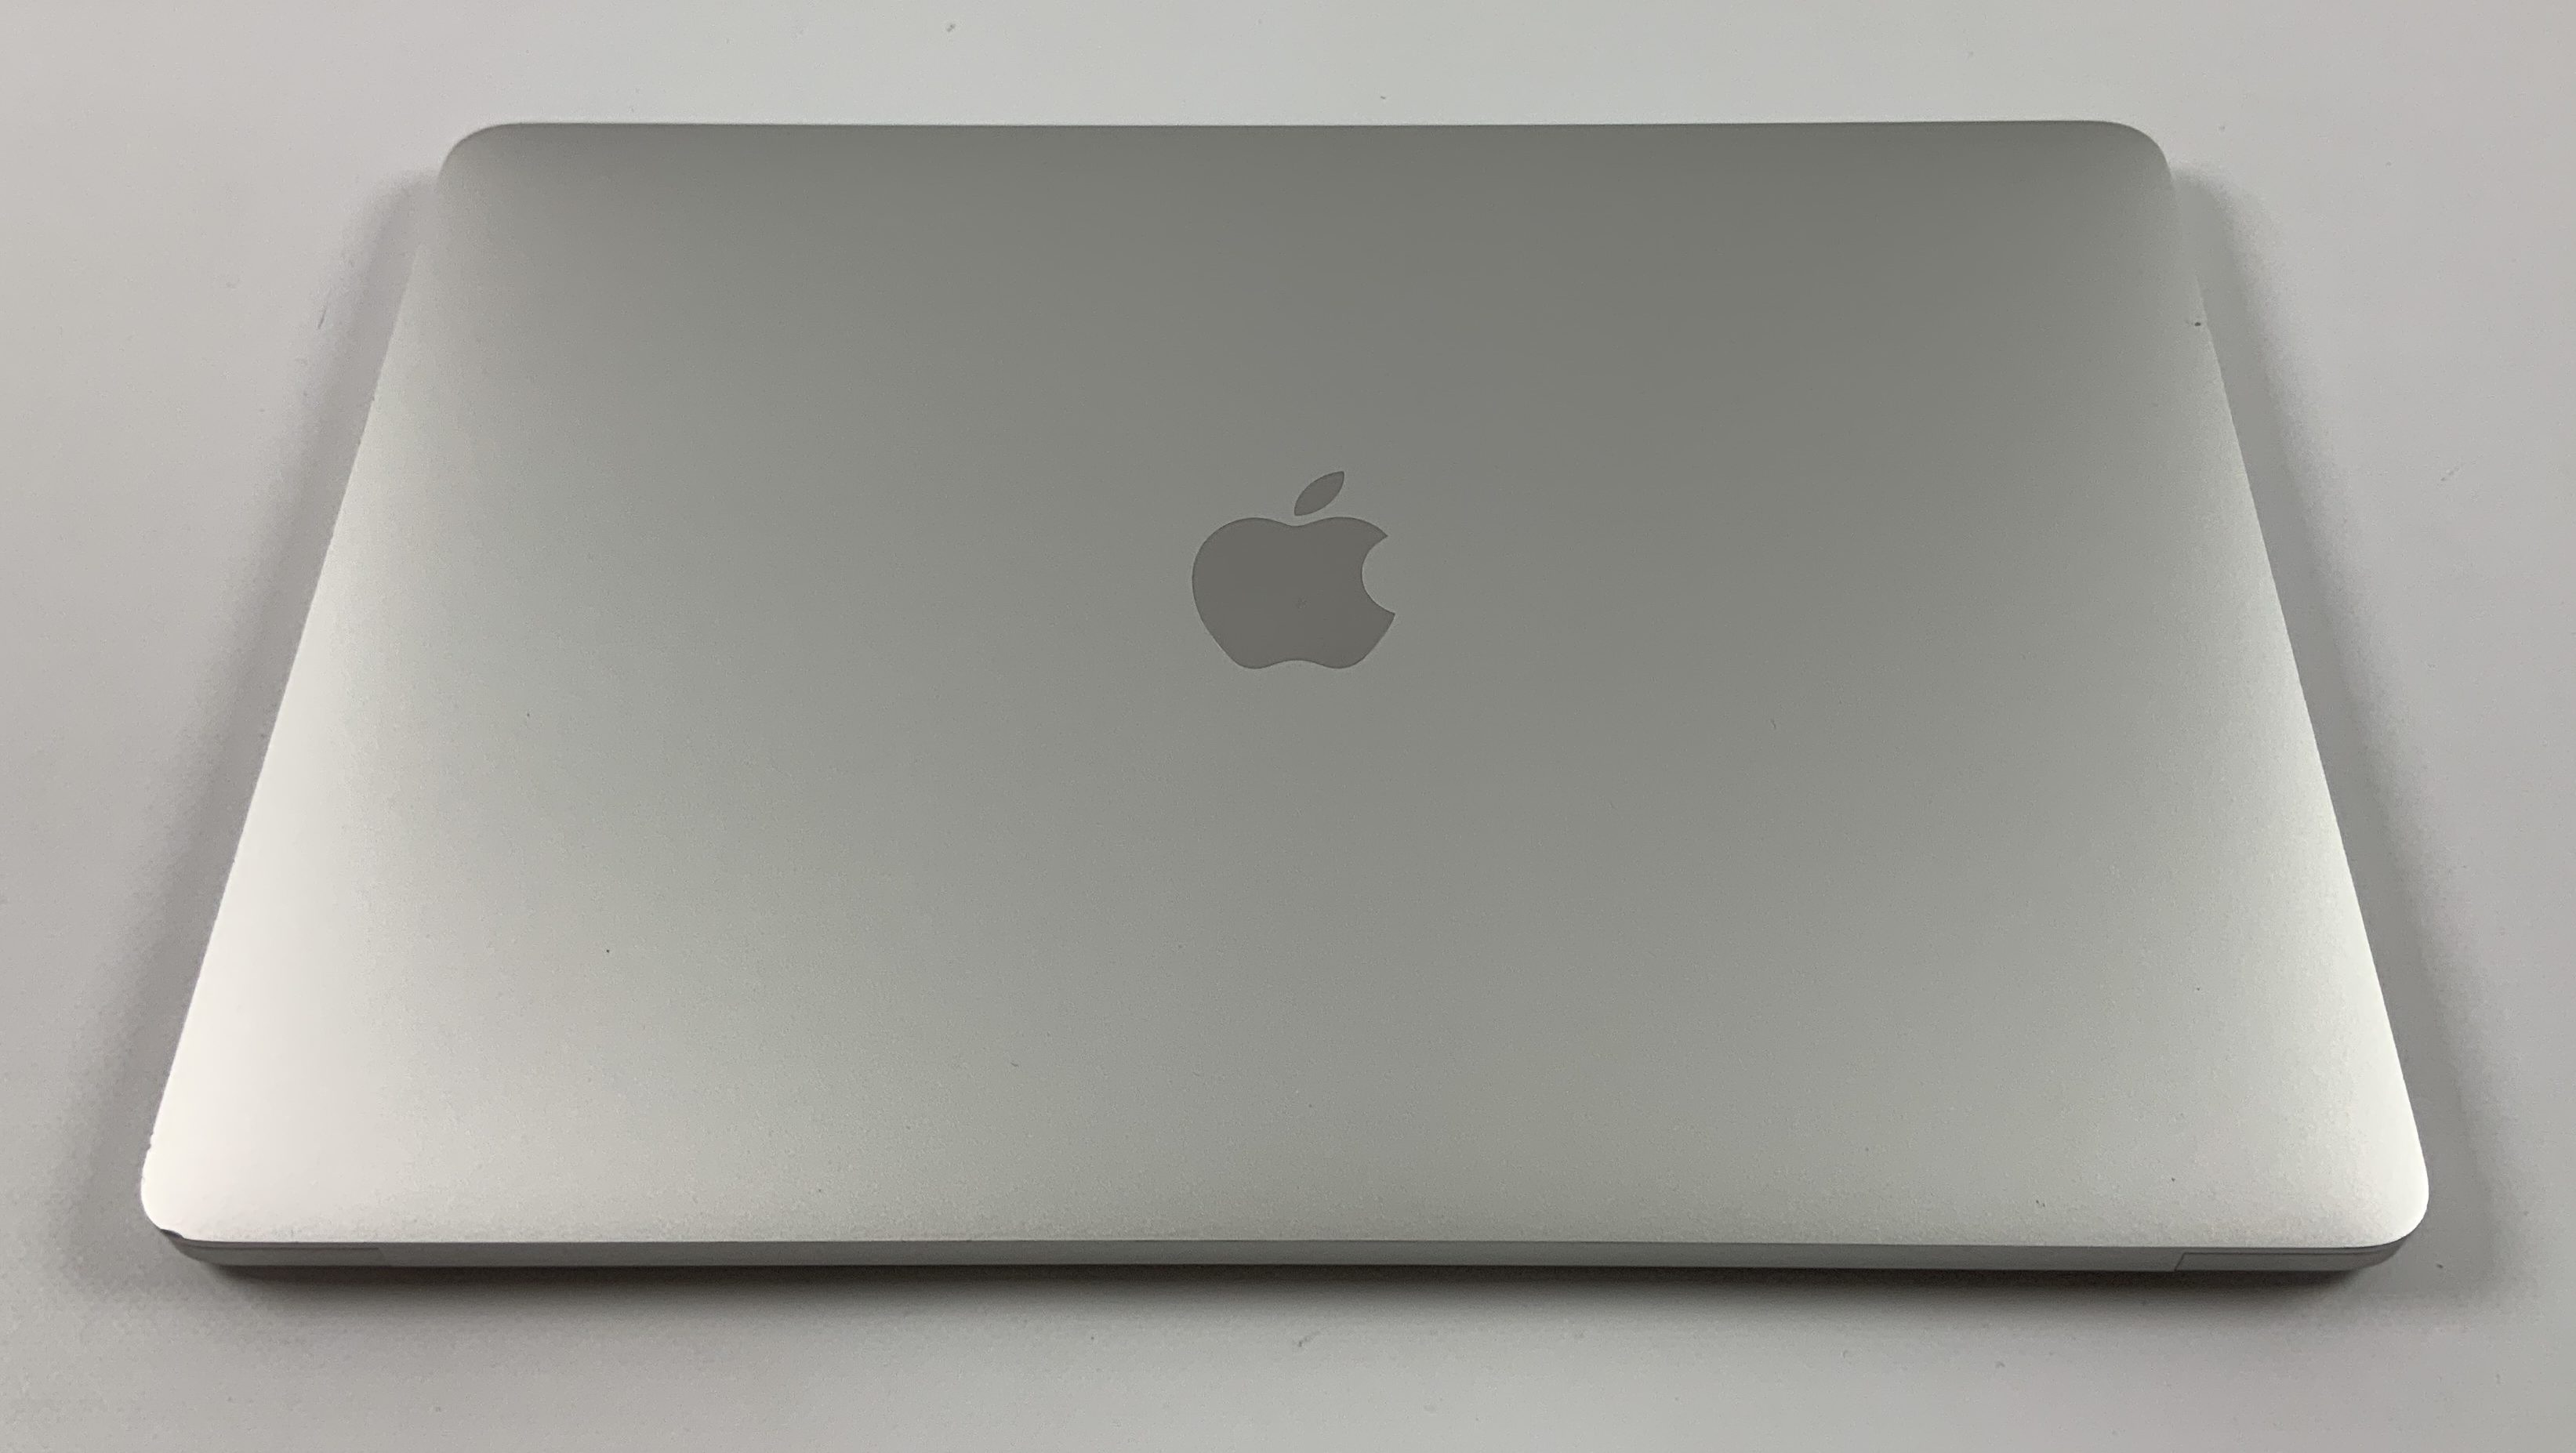 "MacBook Pro 13"" 4TBT Mid 2018 (Intel Quad-Core i5 2.3 GHz 8 GB RAM 512 GB SSD), Silver, Intel Quad-Core i5 2.3 GHz, 8 GB RAM, 512 GB SSD, image 2"